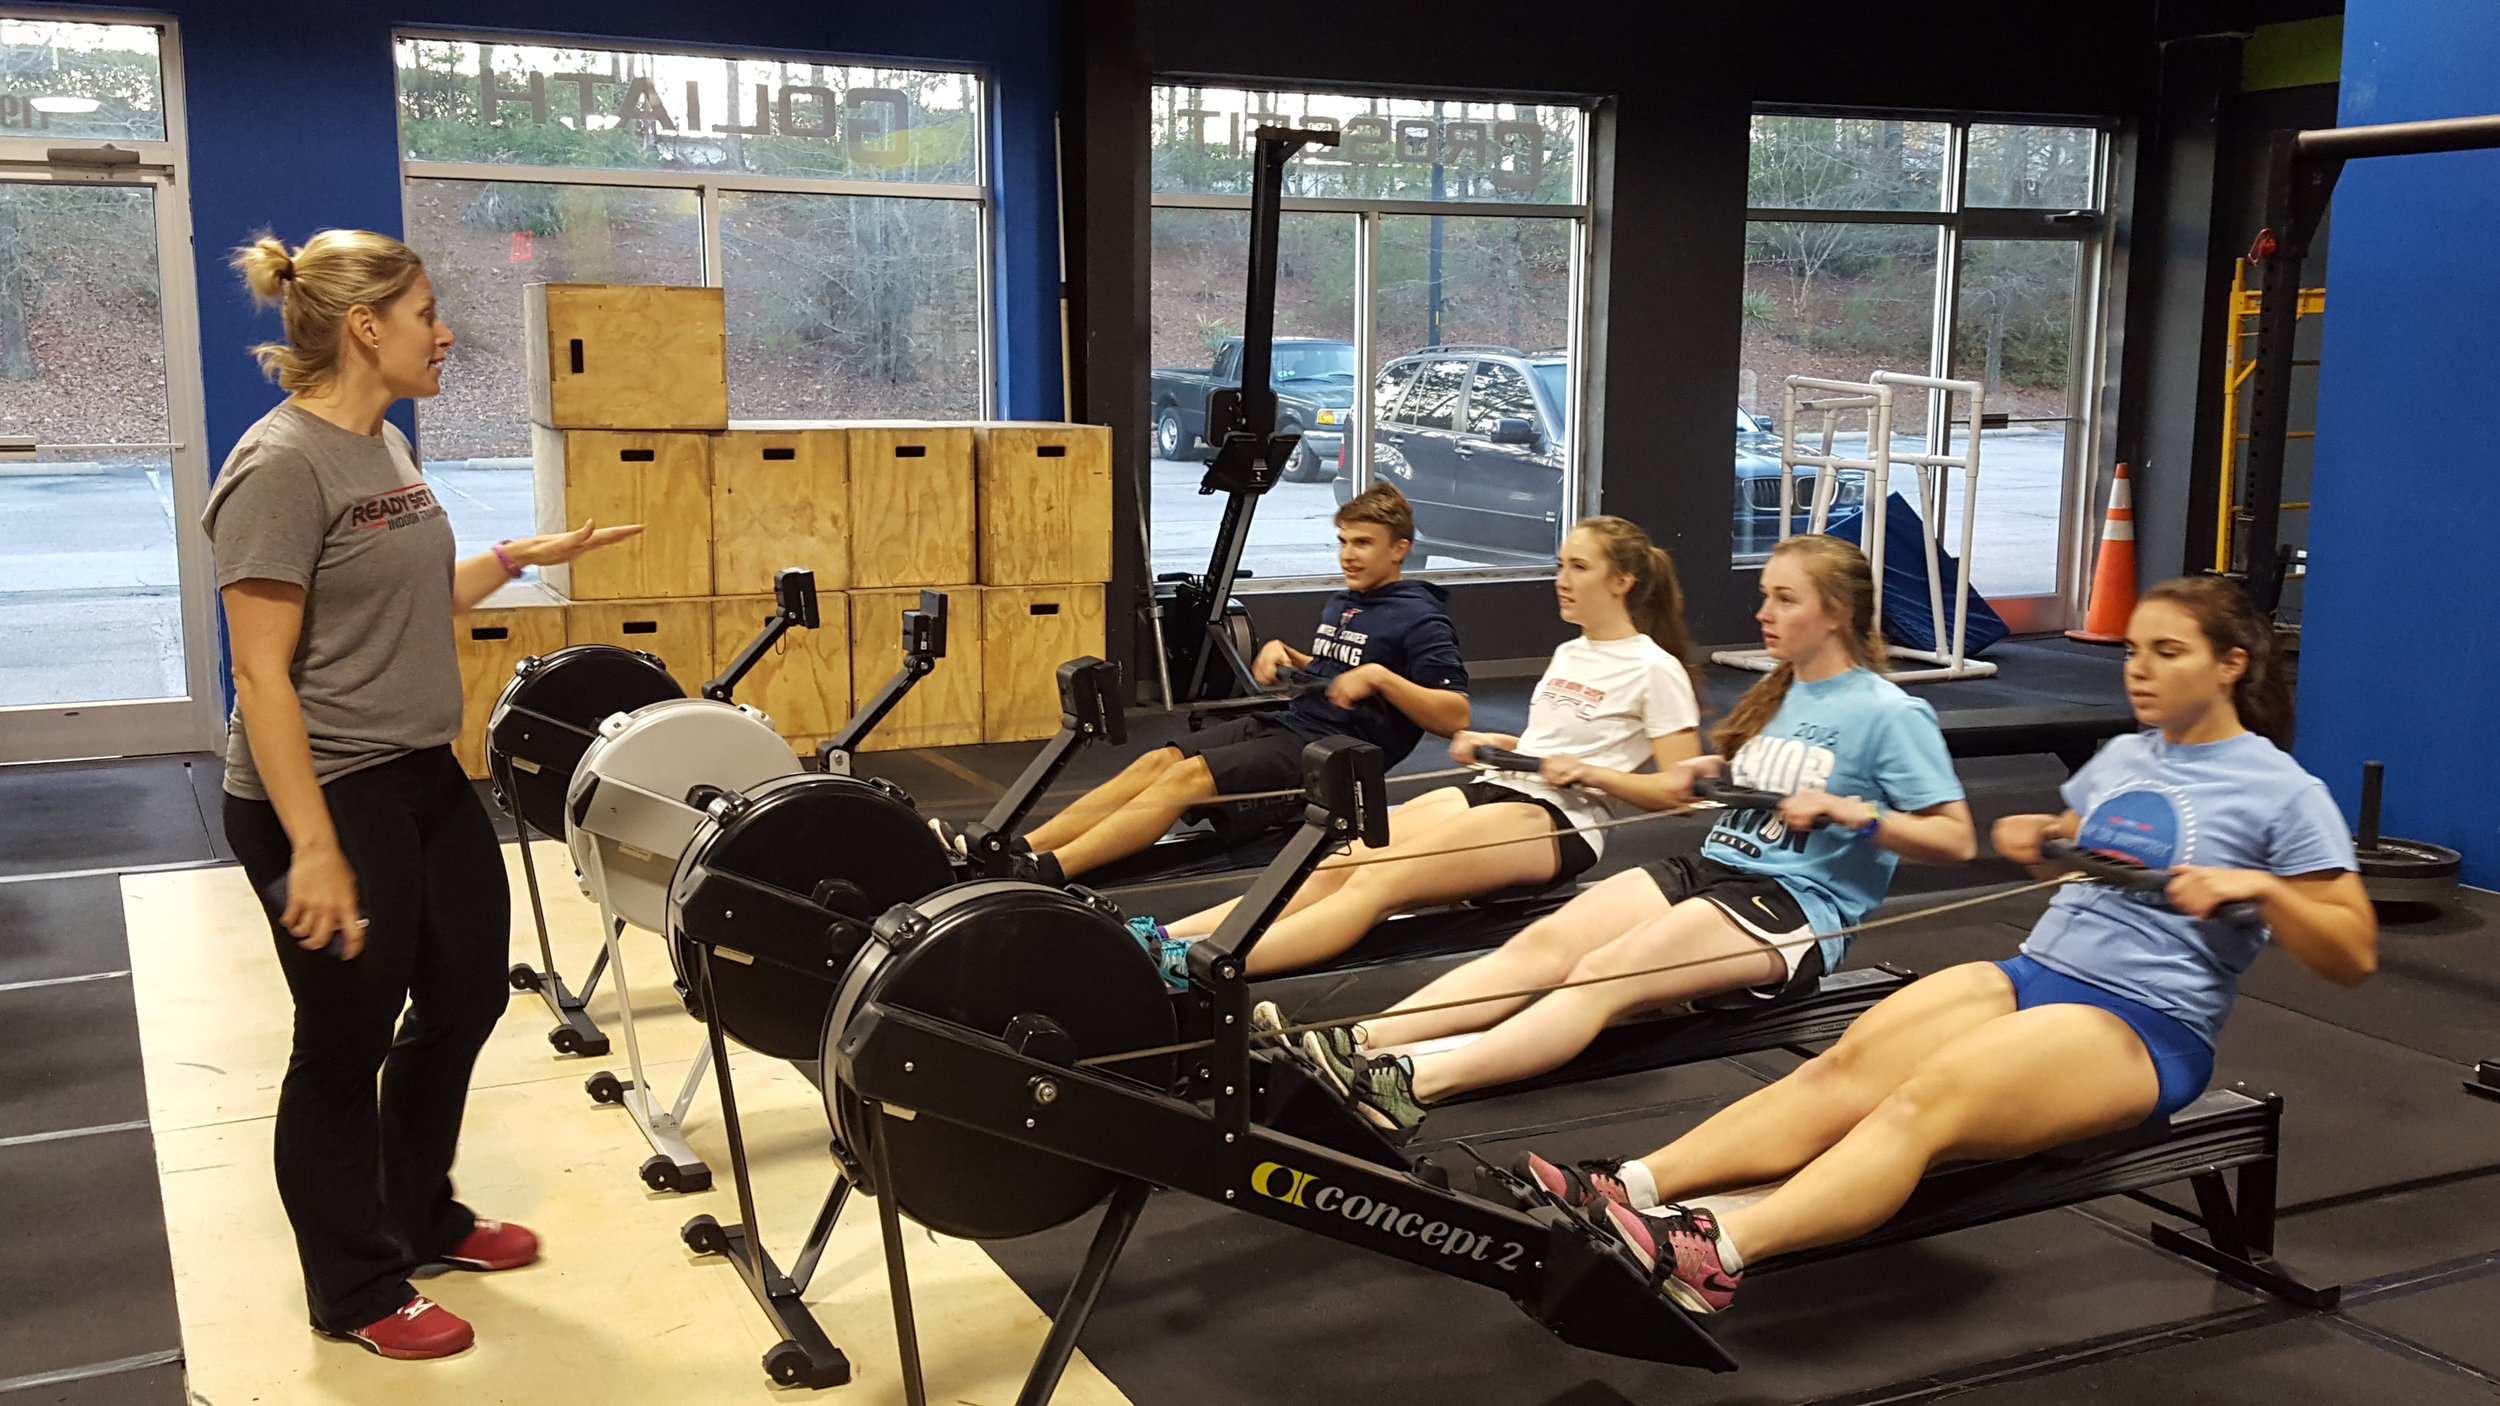 RSR Goliath ergs photo.jpg